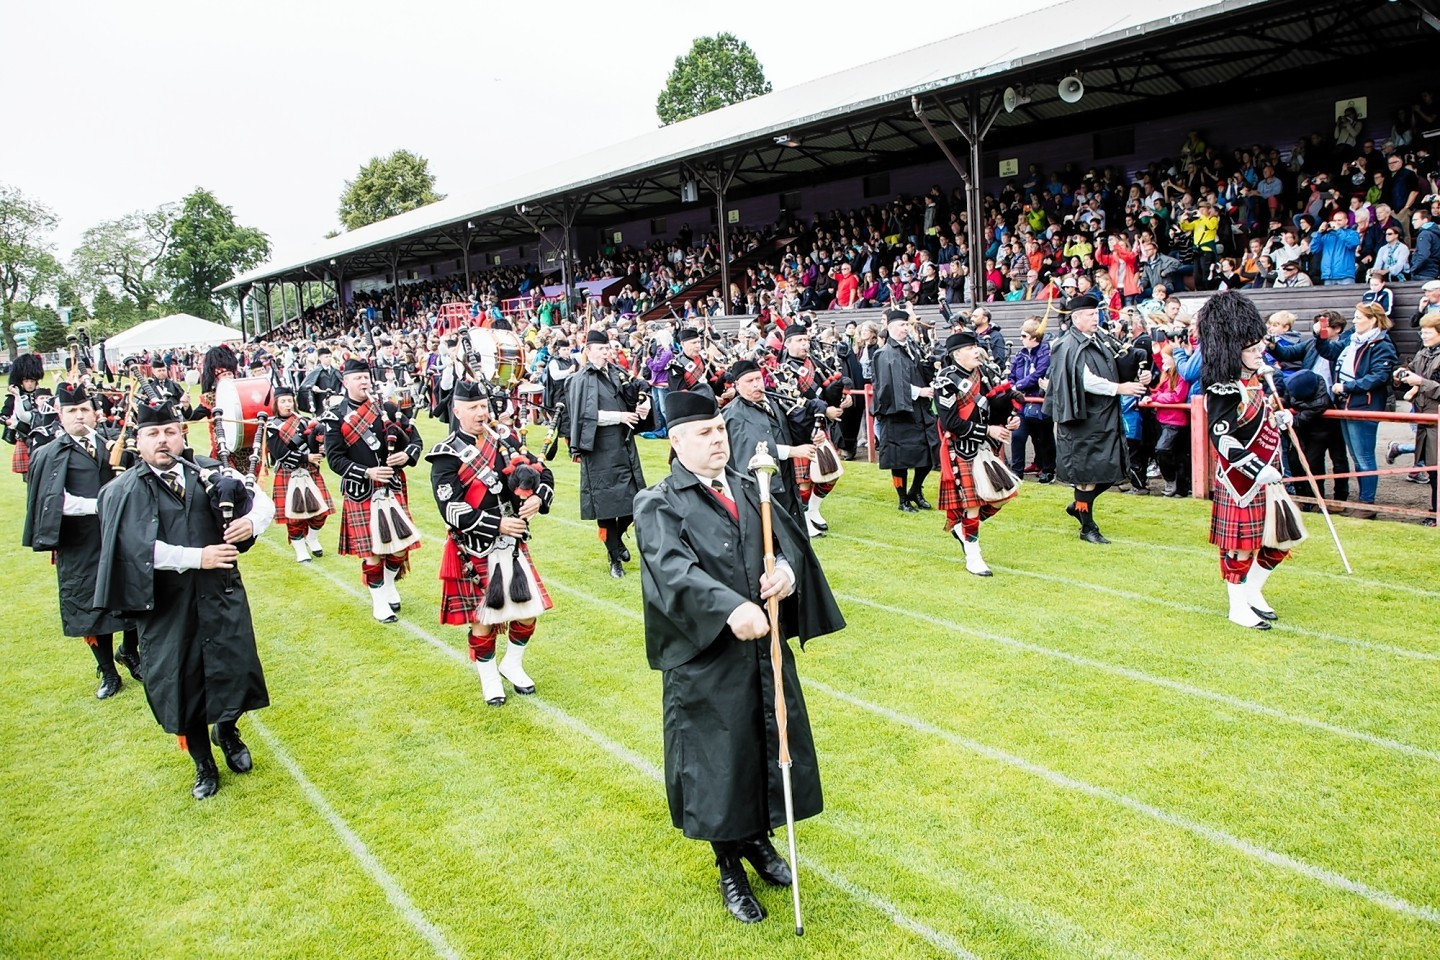 The Inverness Pipe Band delight the crowd at the Inverness Highland Games.